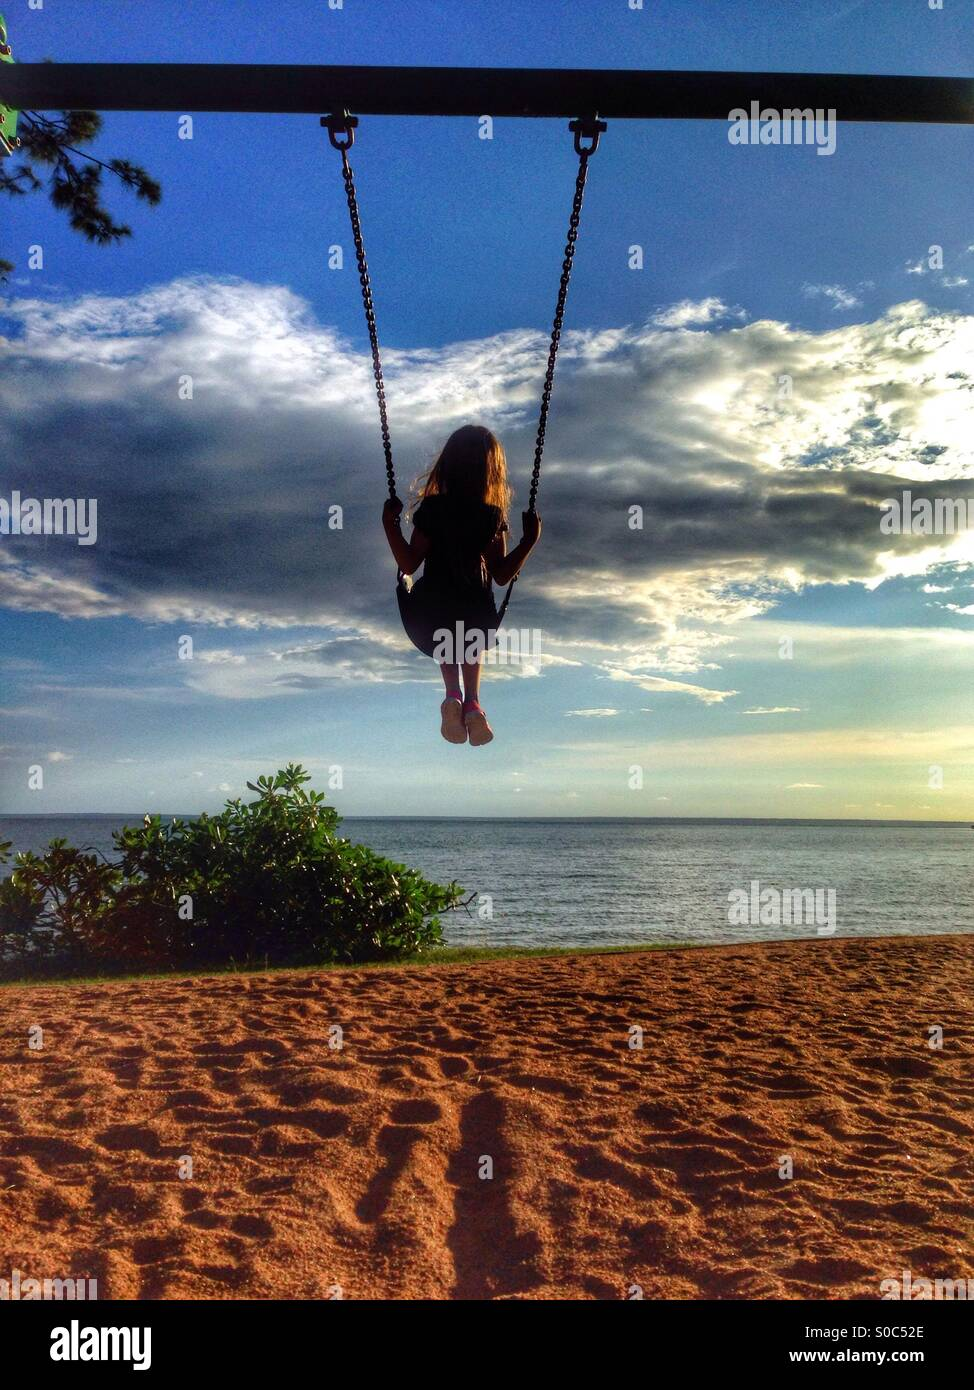 Young girl on a swing at the beach. - Stock Image